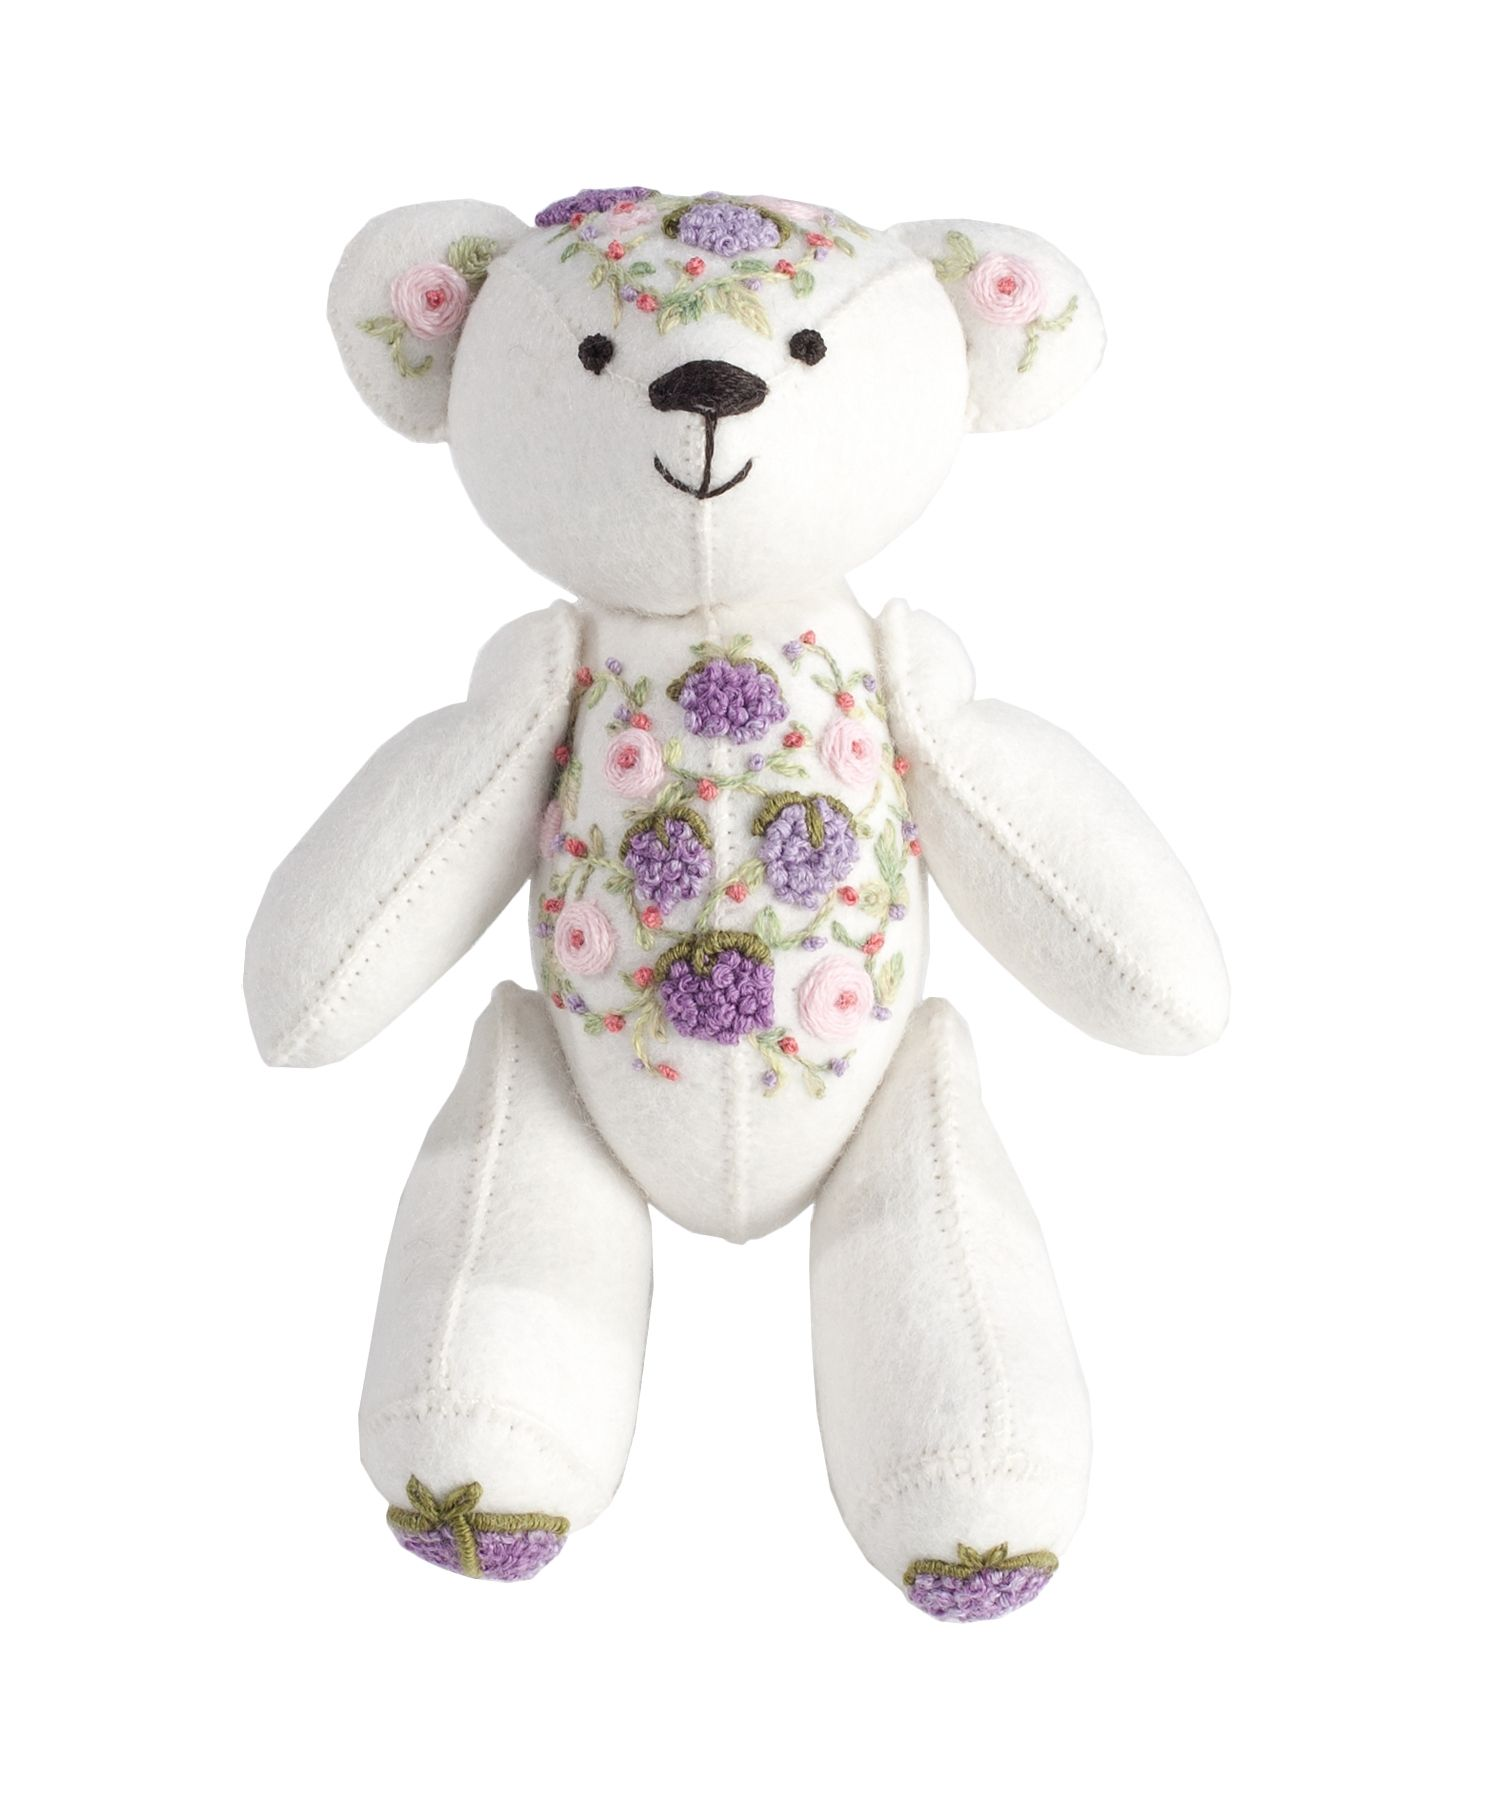 Teddy bear toys images  Colorlicious  Milkwhite toy bear  CreativeLatvia  Latvija